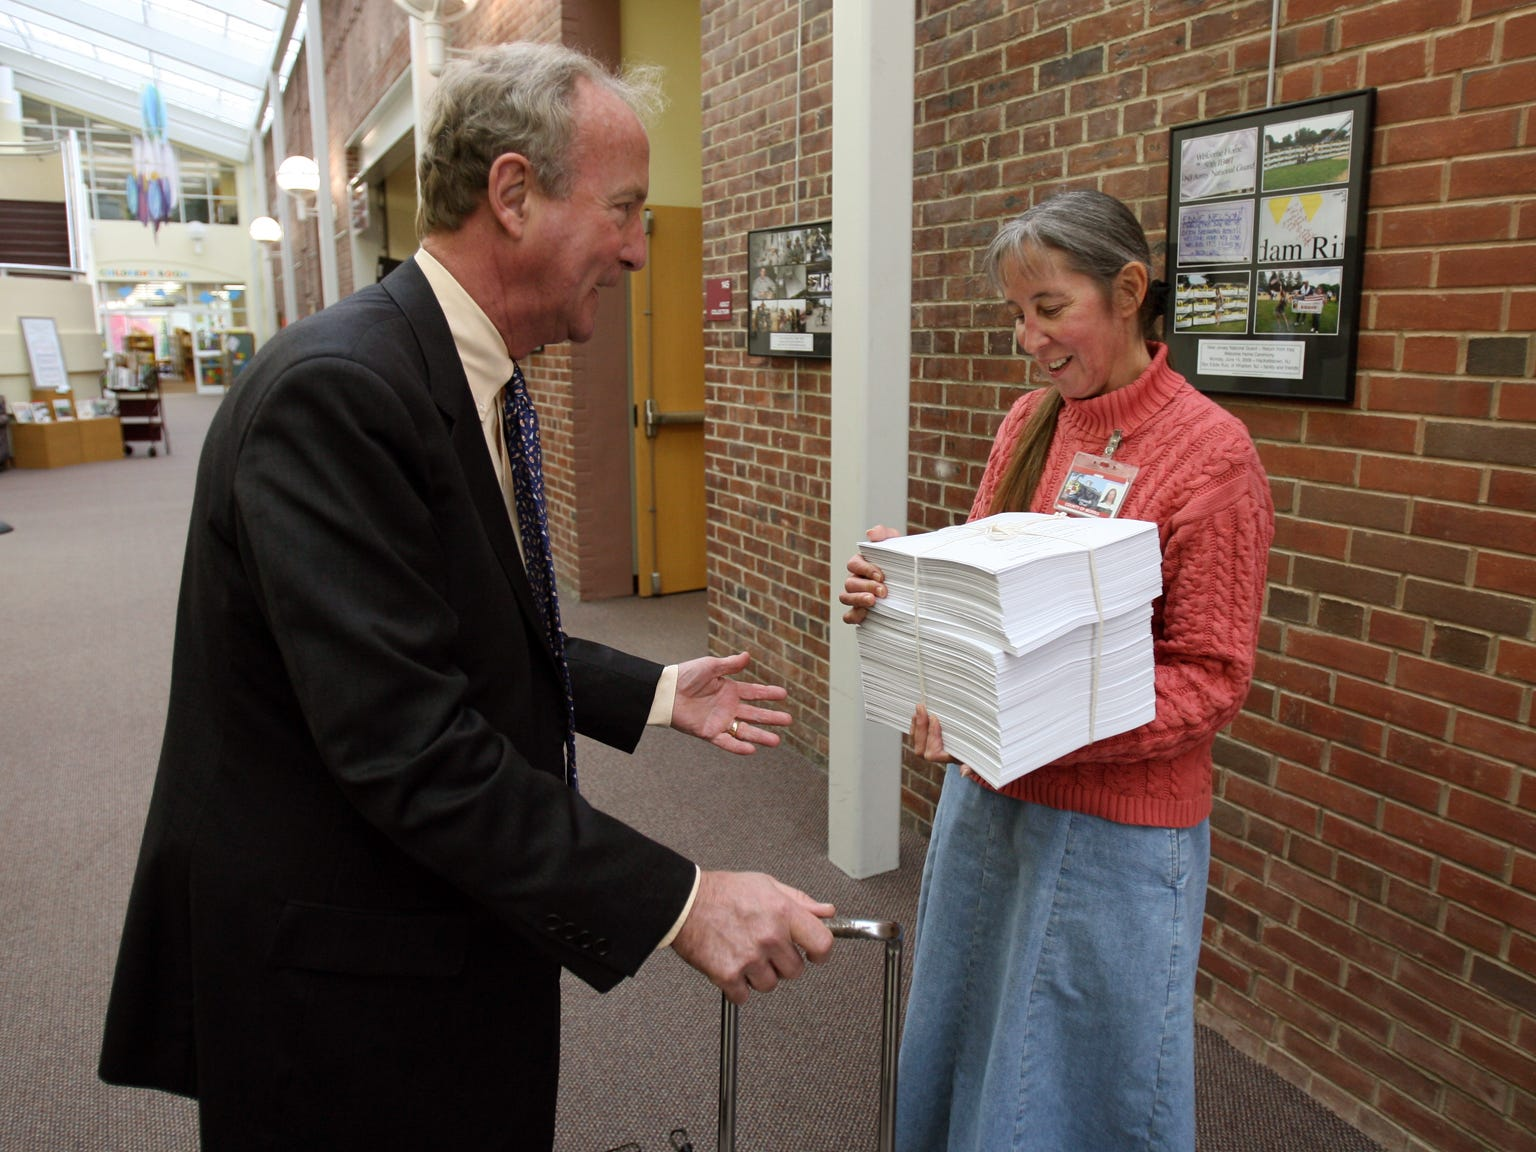 Morris Twp--Oct 30, 2009--Congressman Rodney Frelinghuysen delivers the nearly 2000 page health care reform bill to the Director of the Morris County Library Lynne Olver. (cq)